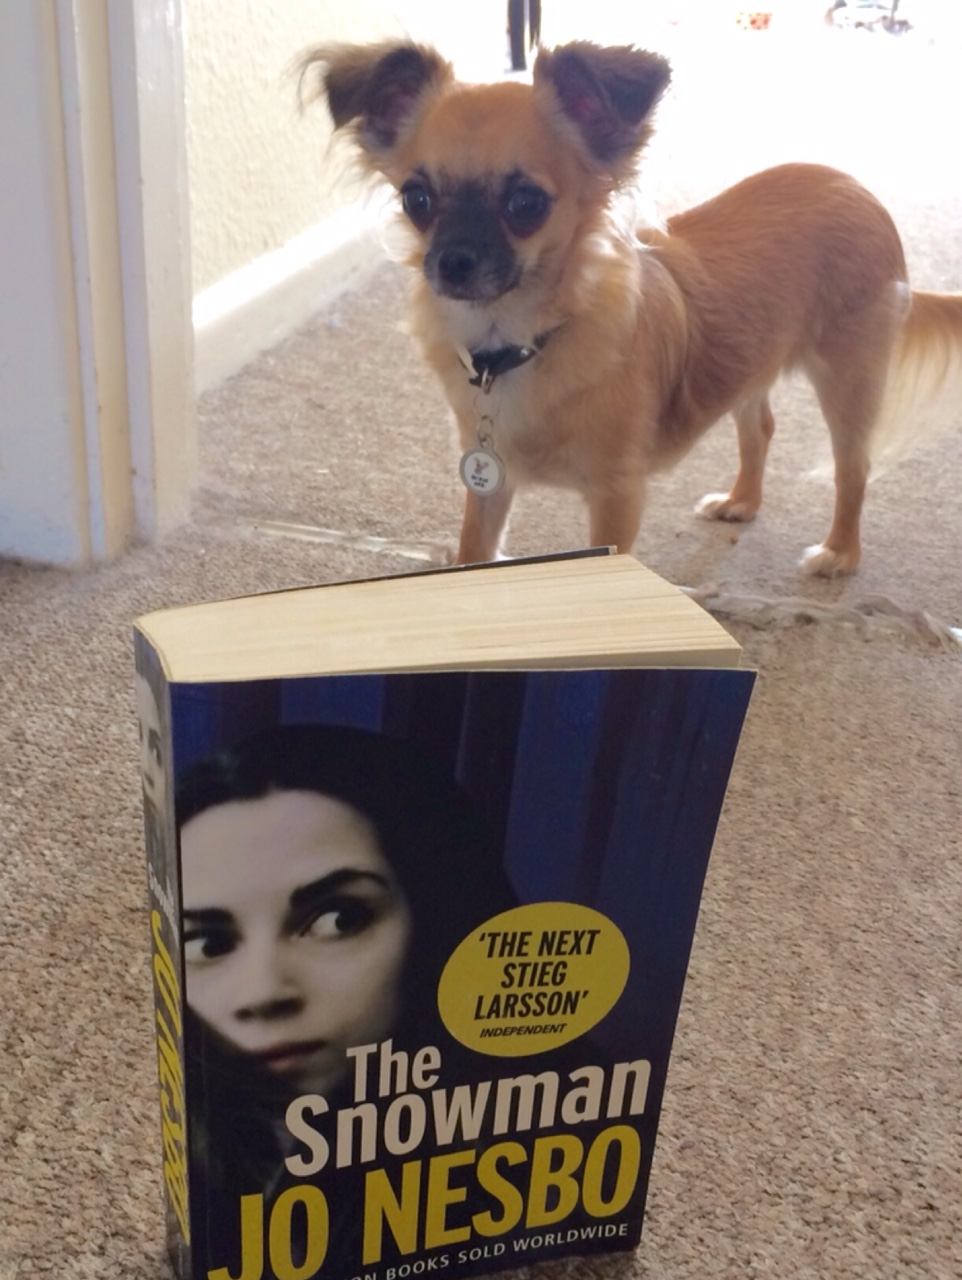 Chihuahua with Jo Nesbo book The Snowman